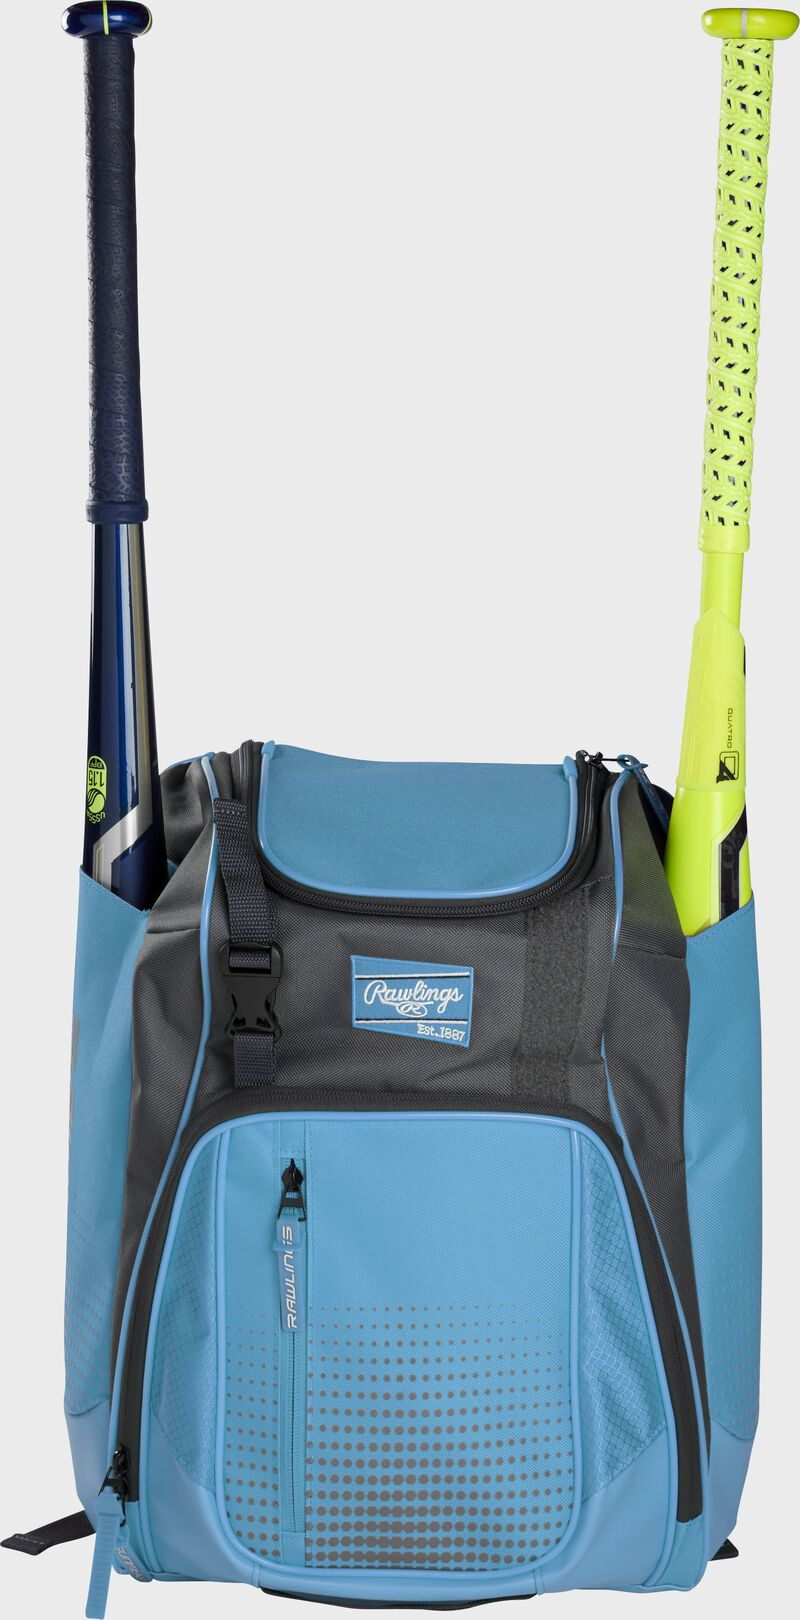 Front of a Columbia blue Rawlings Franchise baseball backpack with two bats in the side sleeves - SKU: FRANBP-CB